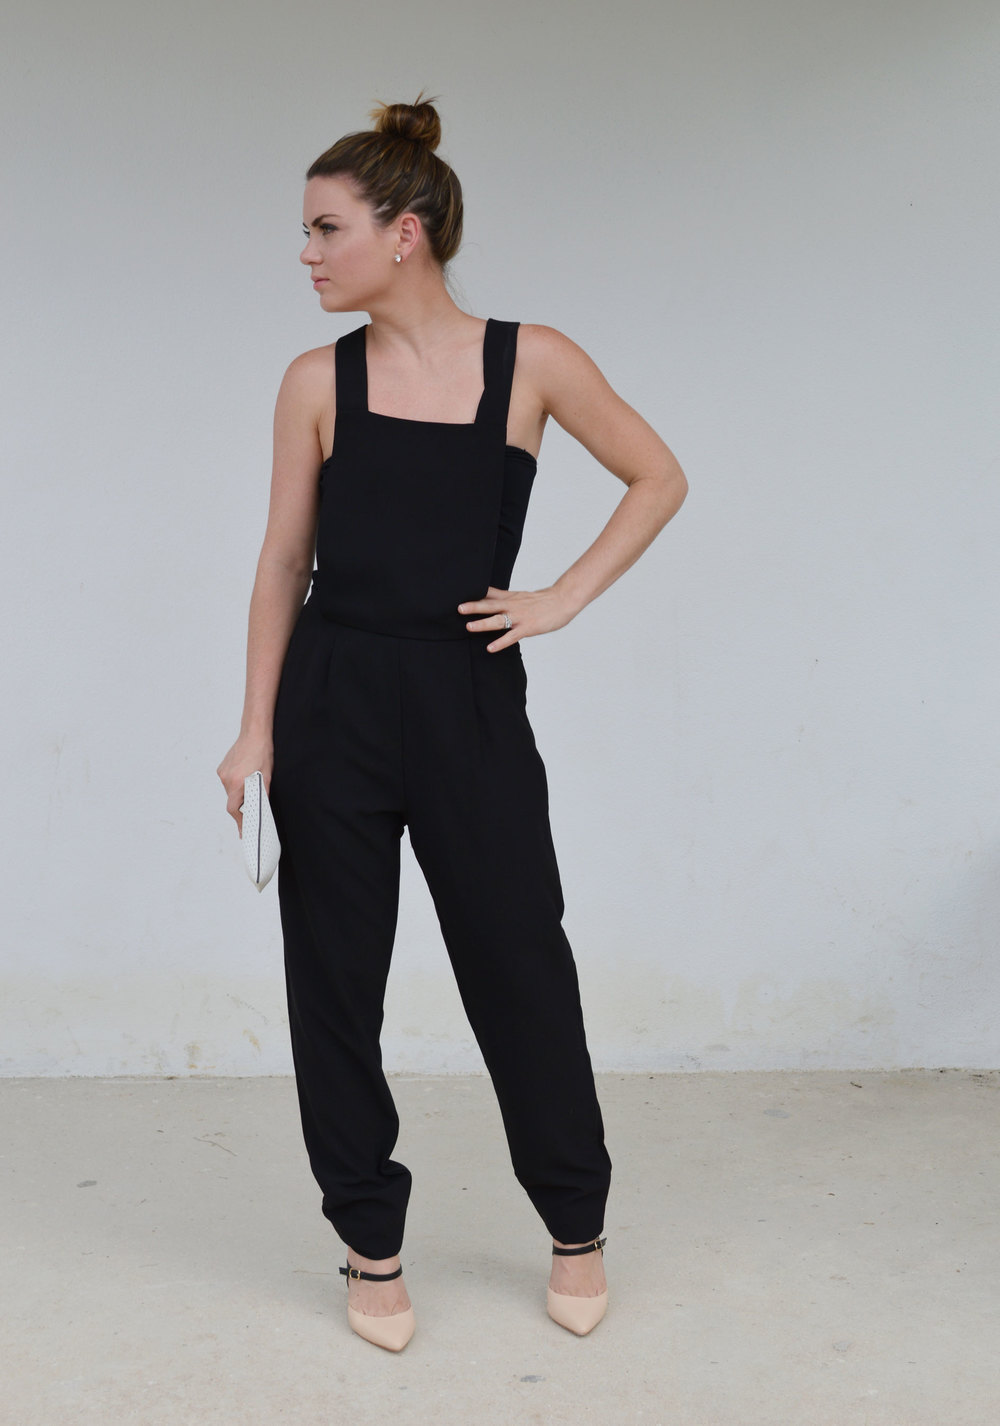 all-Black-Overalls-ShoeDazzle-FromCtoC-heels-wiw-ootd-nassau-style-lifestyle-fashion-blogger.jpeg